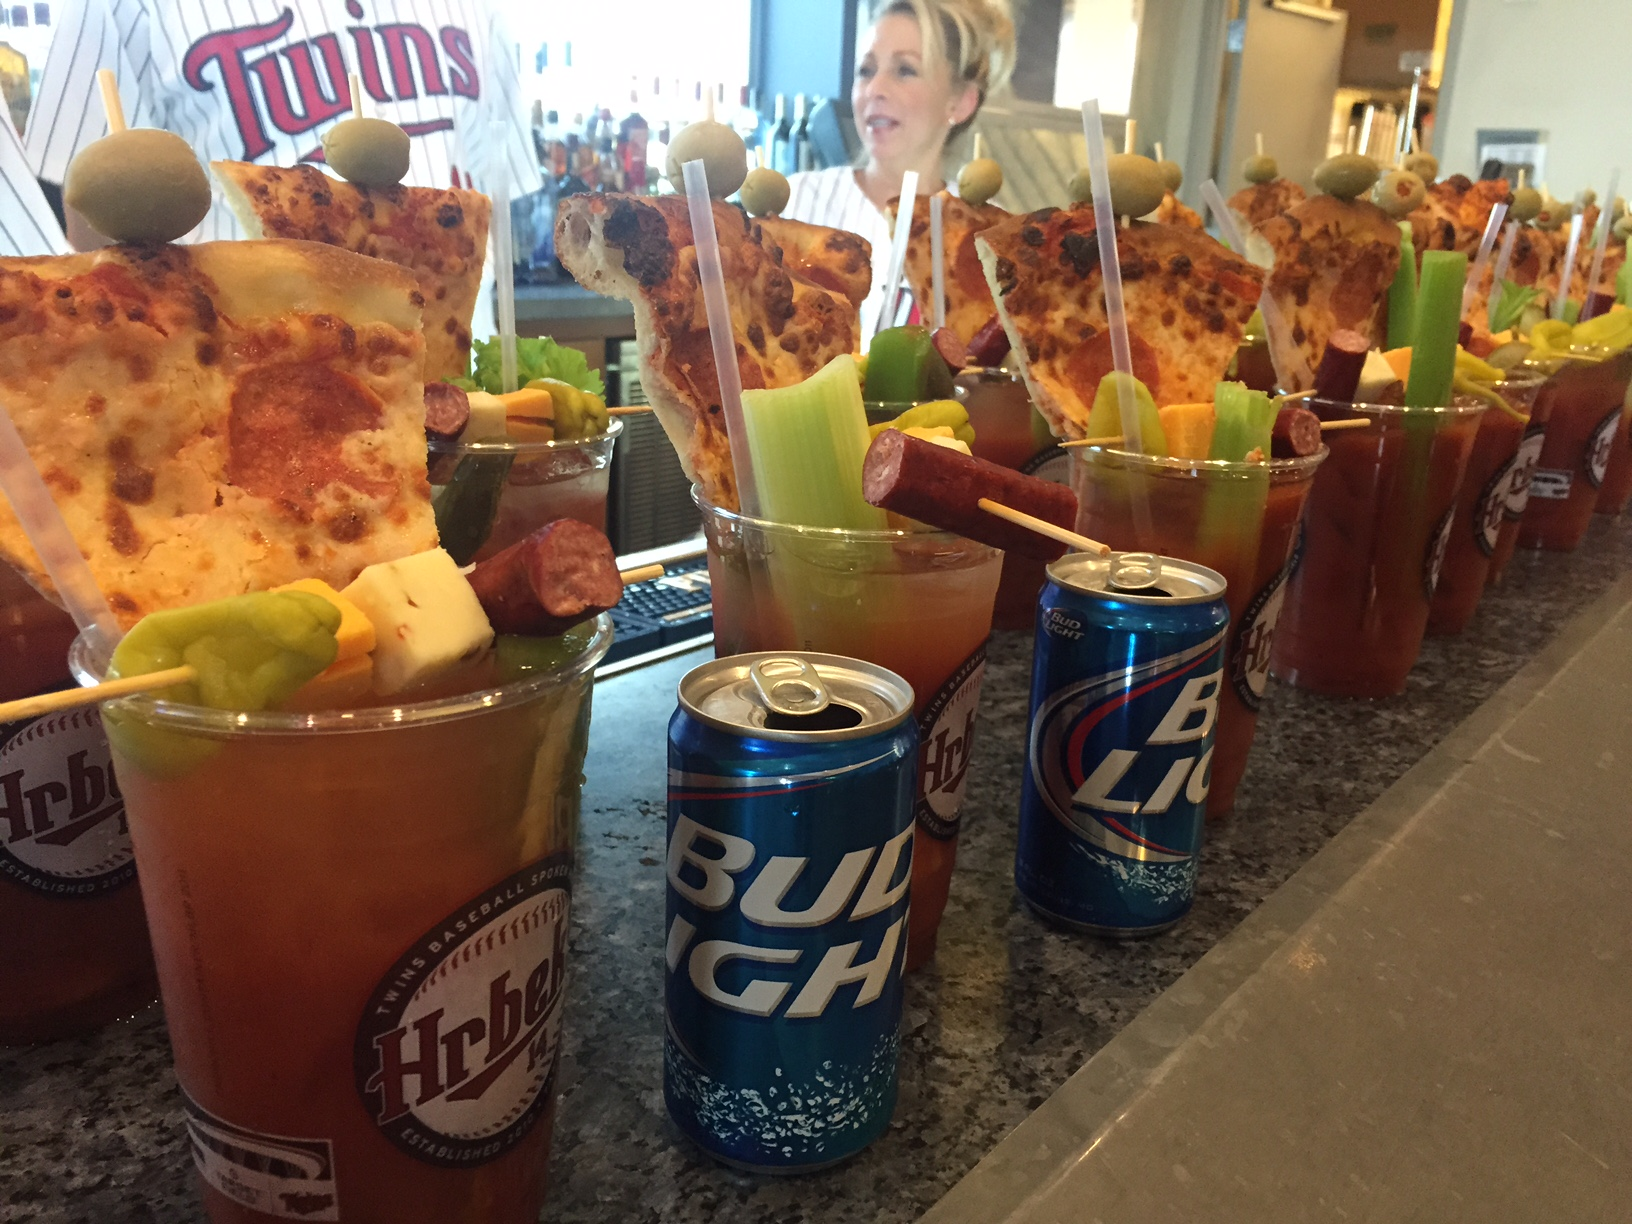 The Twins' 'College Daze' Bloody Mary, with Cold Slice of Pizza and Bud Light beer chaser